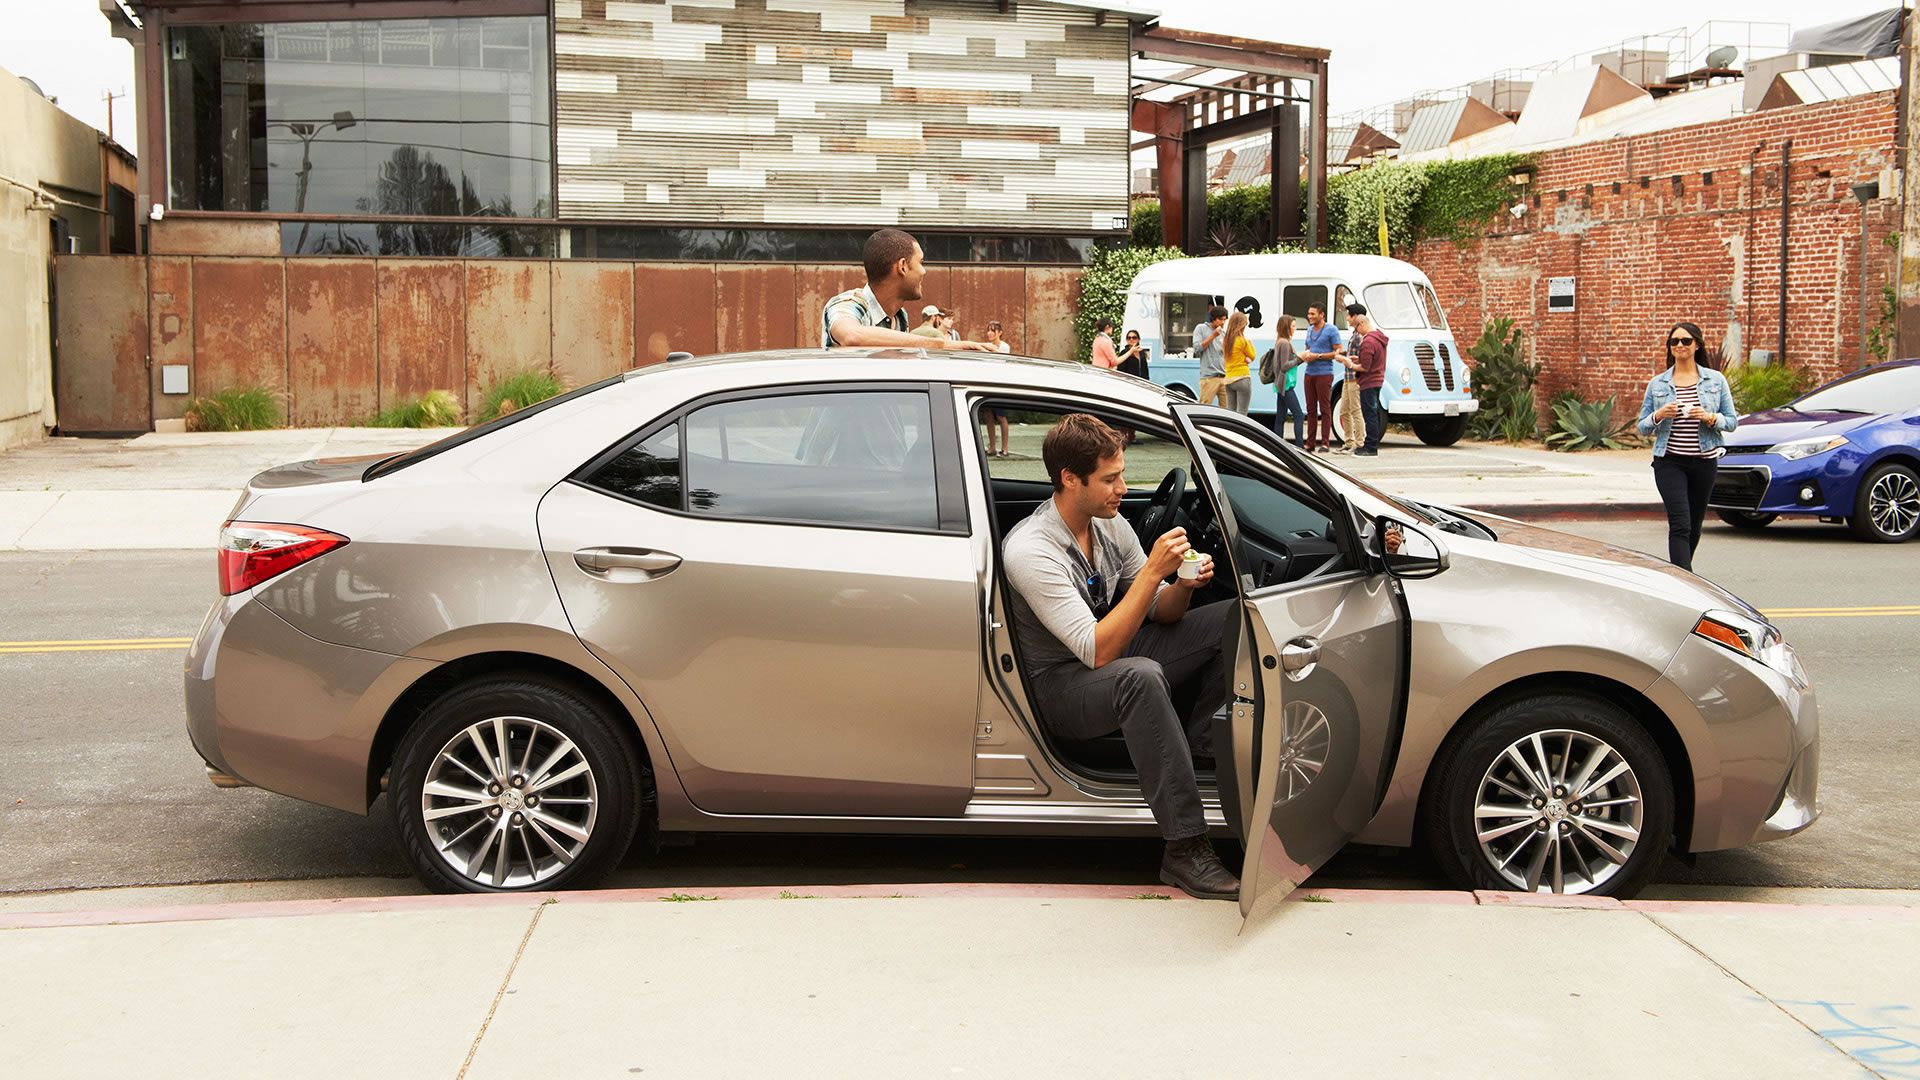 medium resolution of metallic arrive with a style toyota dealers toyota corolla brown sugar cool cars